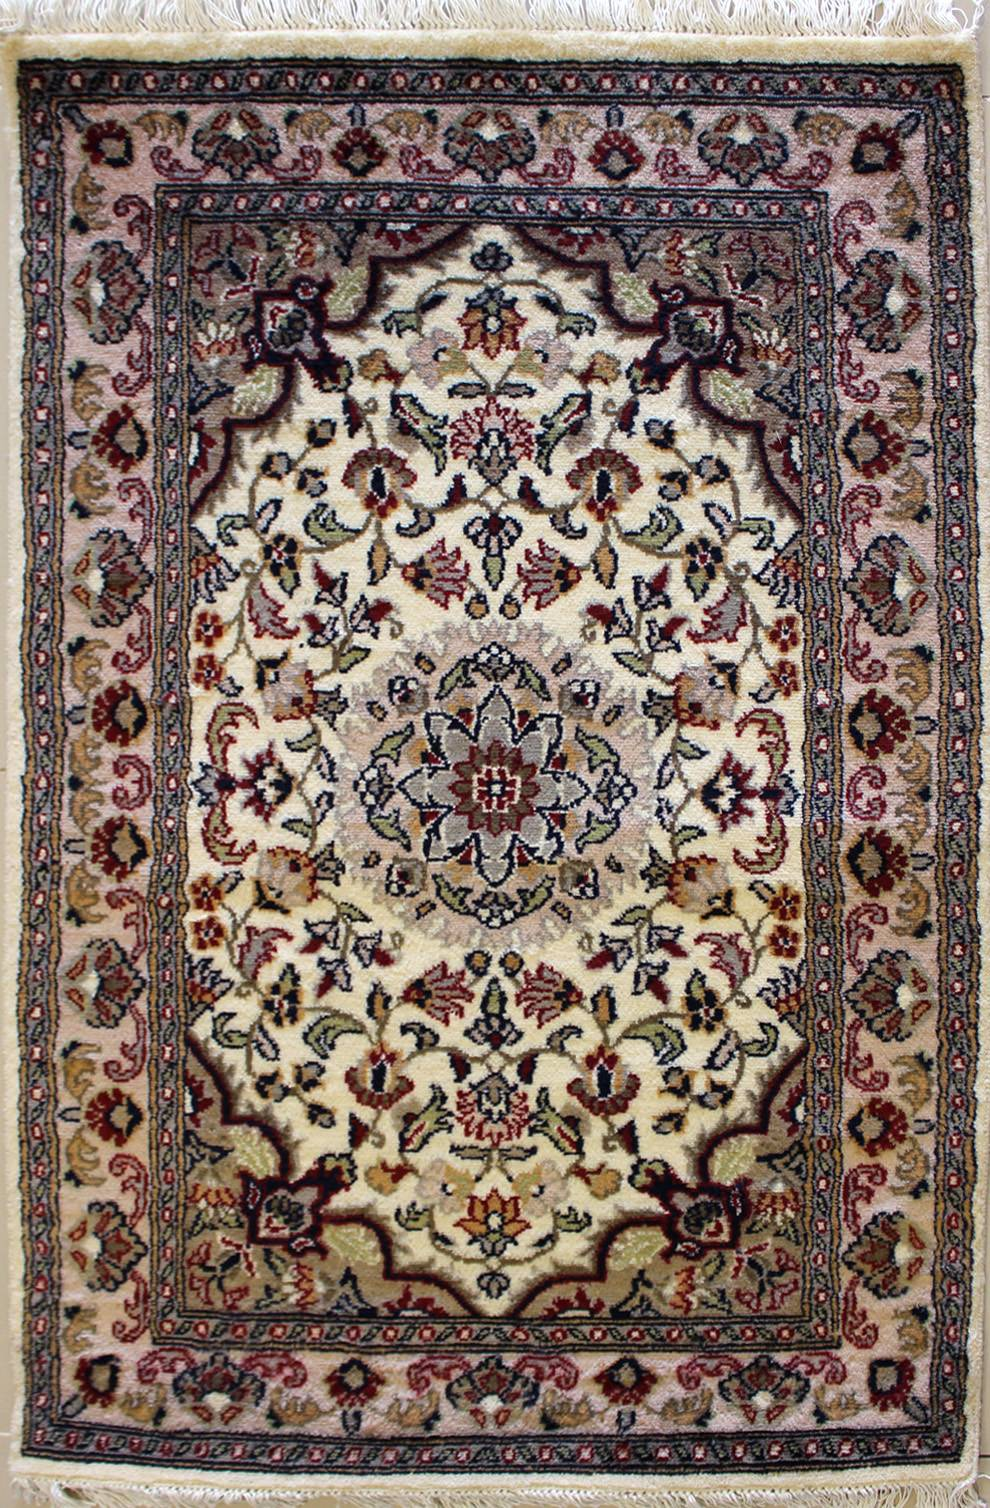 2'6x4'2 Rug - Floral - Handmade Pak Persian High Quality Rugs - a 2x4 Rug  size - RugsTC